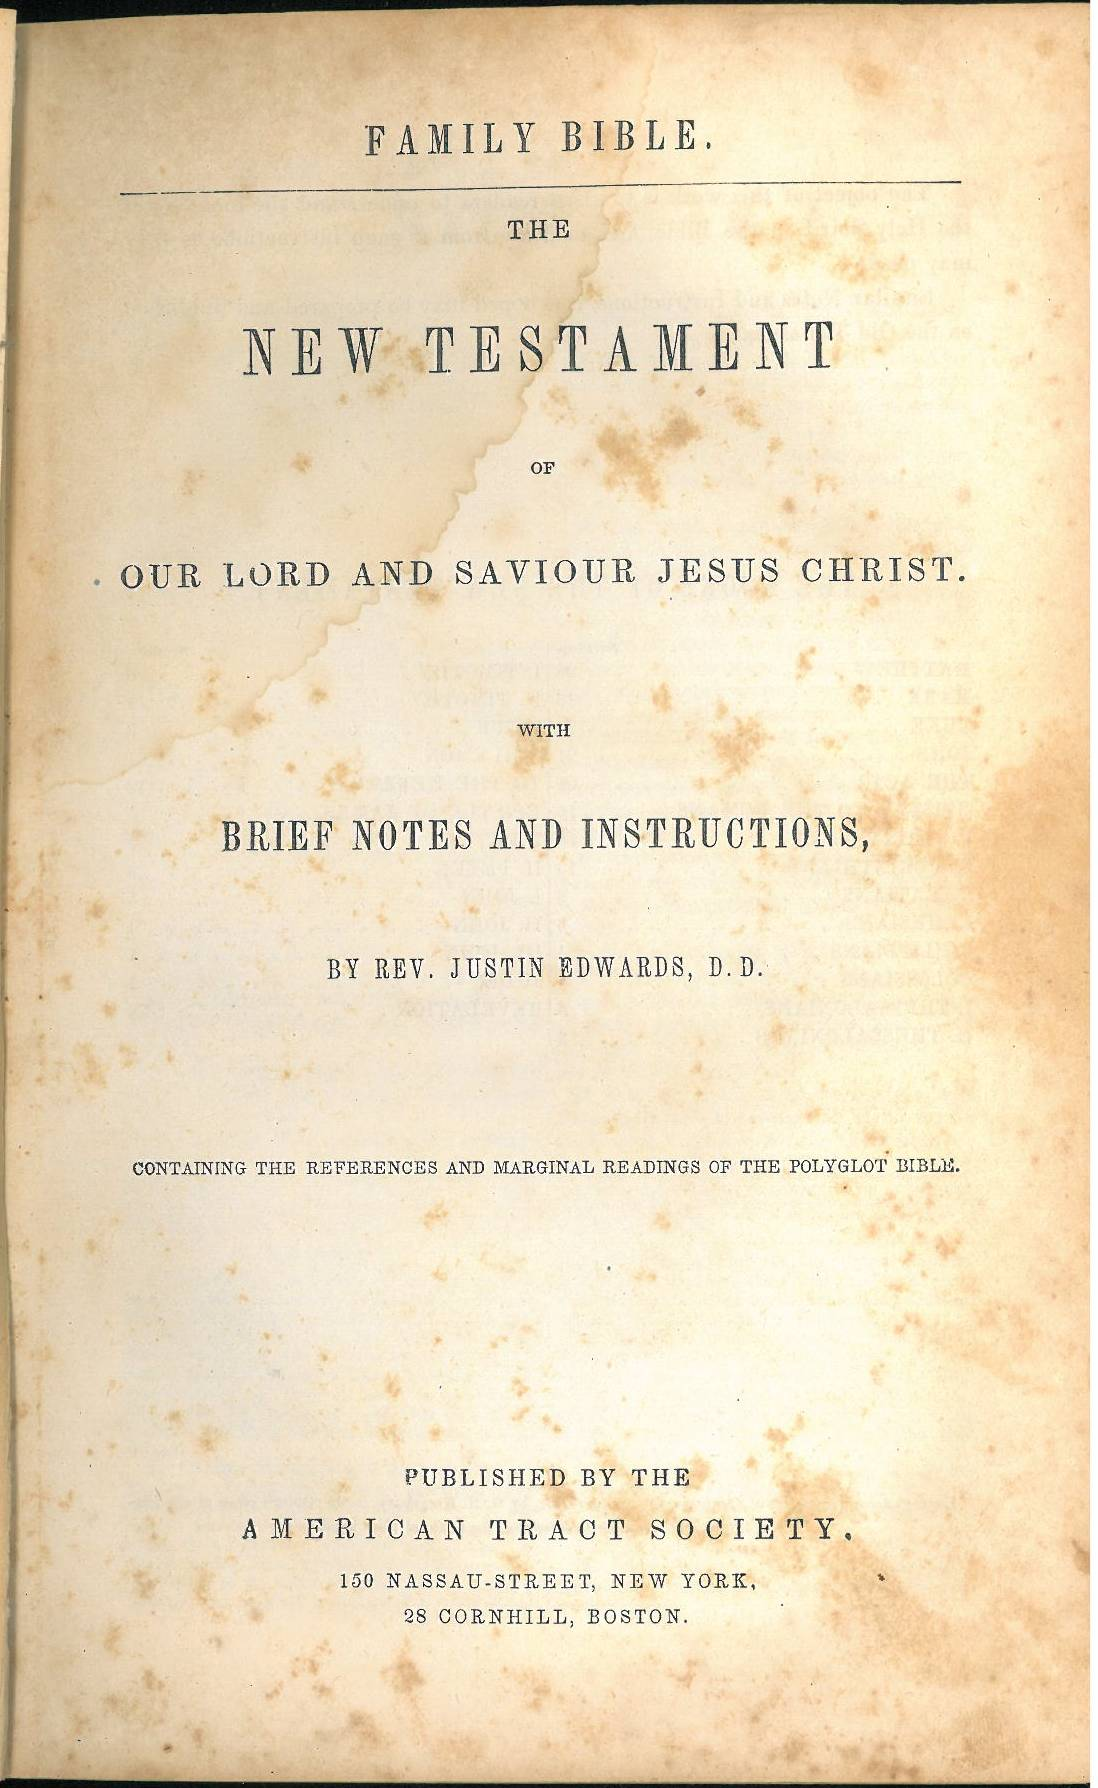 ... Lord and Saviour Jesus Christ. With Brief Notes and Instructions, by  Rev. Justin Edwards, D.D.. Date: 1851. Publisher: New York: American Tract  Society